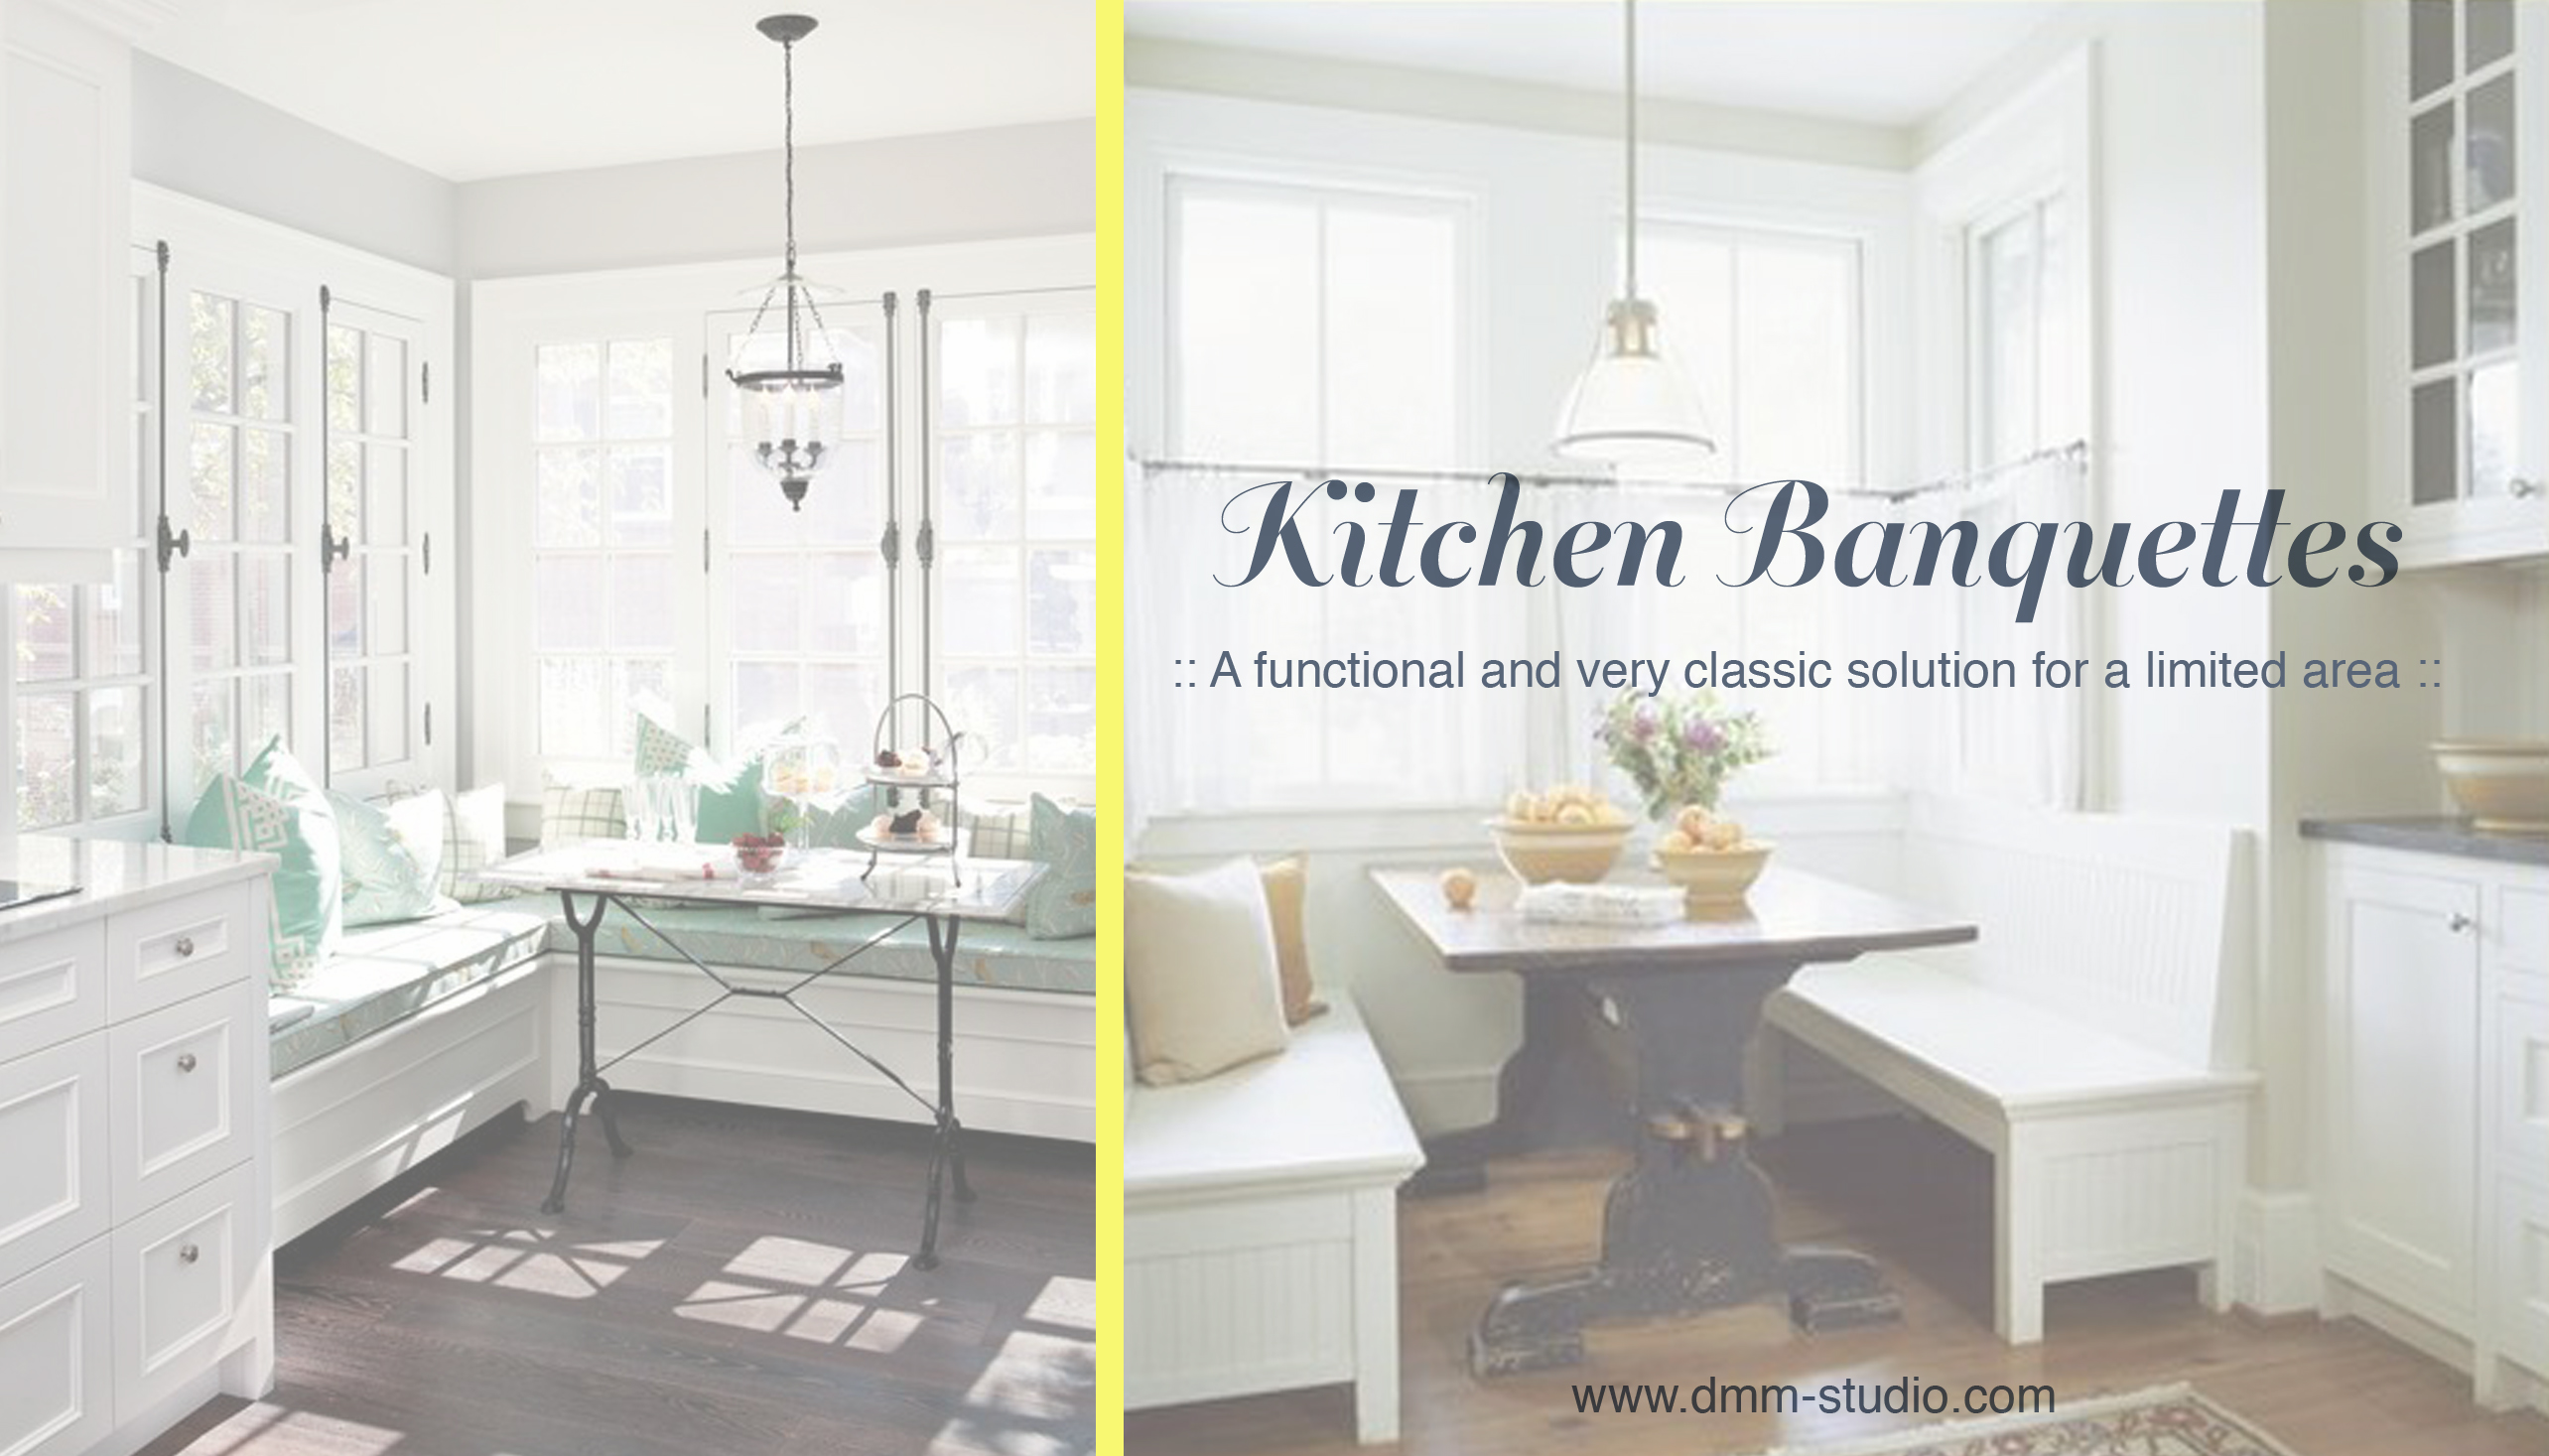 Designer's Insight: Kitchen Banquettes